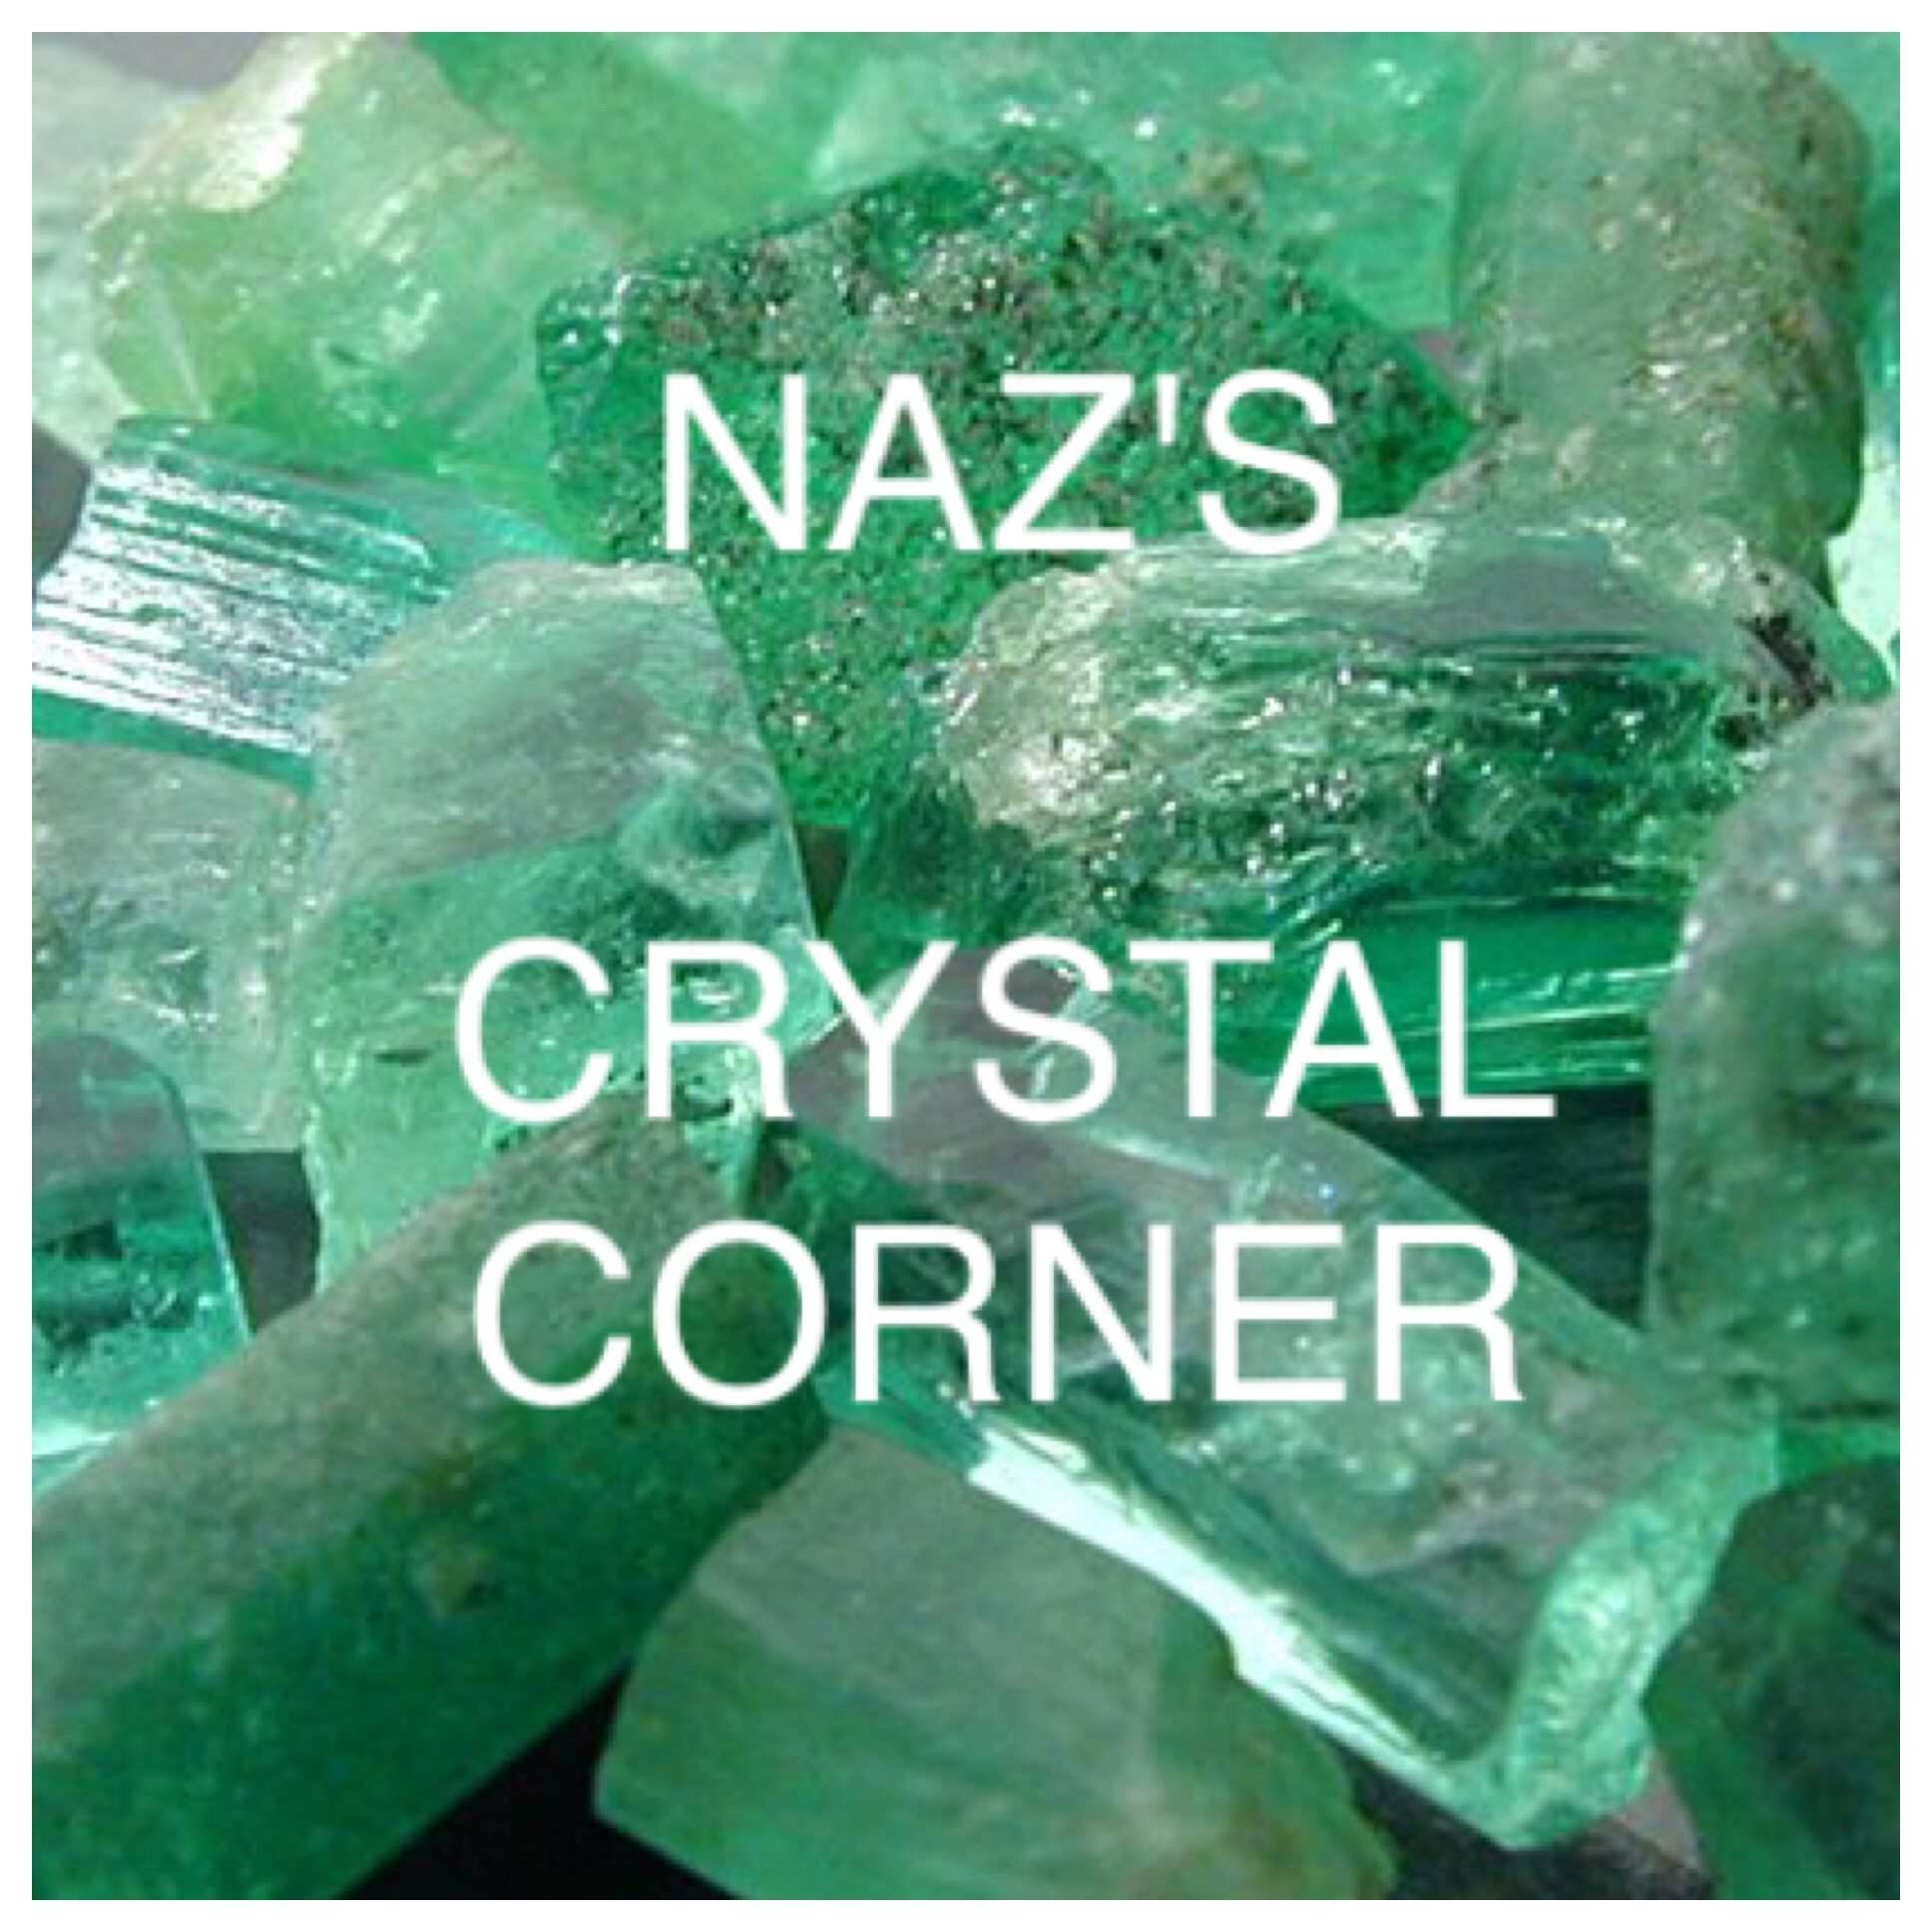 Naz's crystal horoscopes 28th October - 3rd November 2018